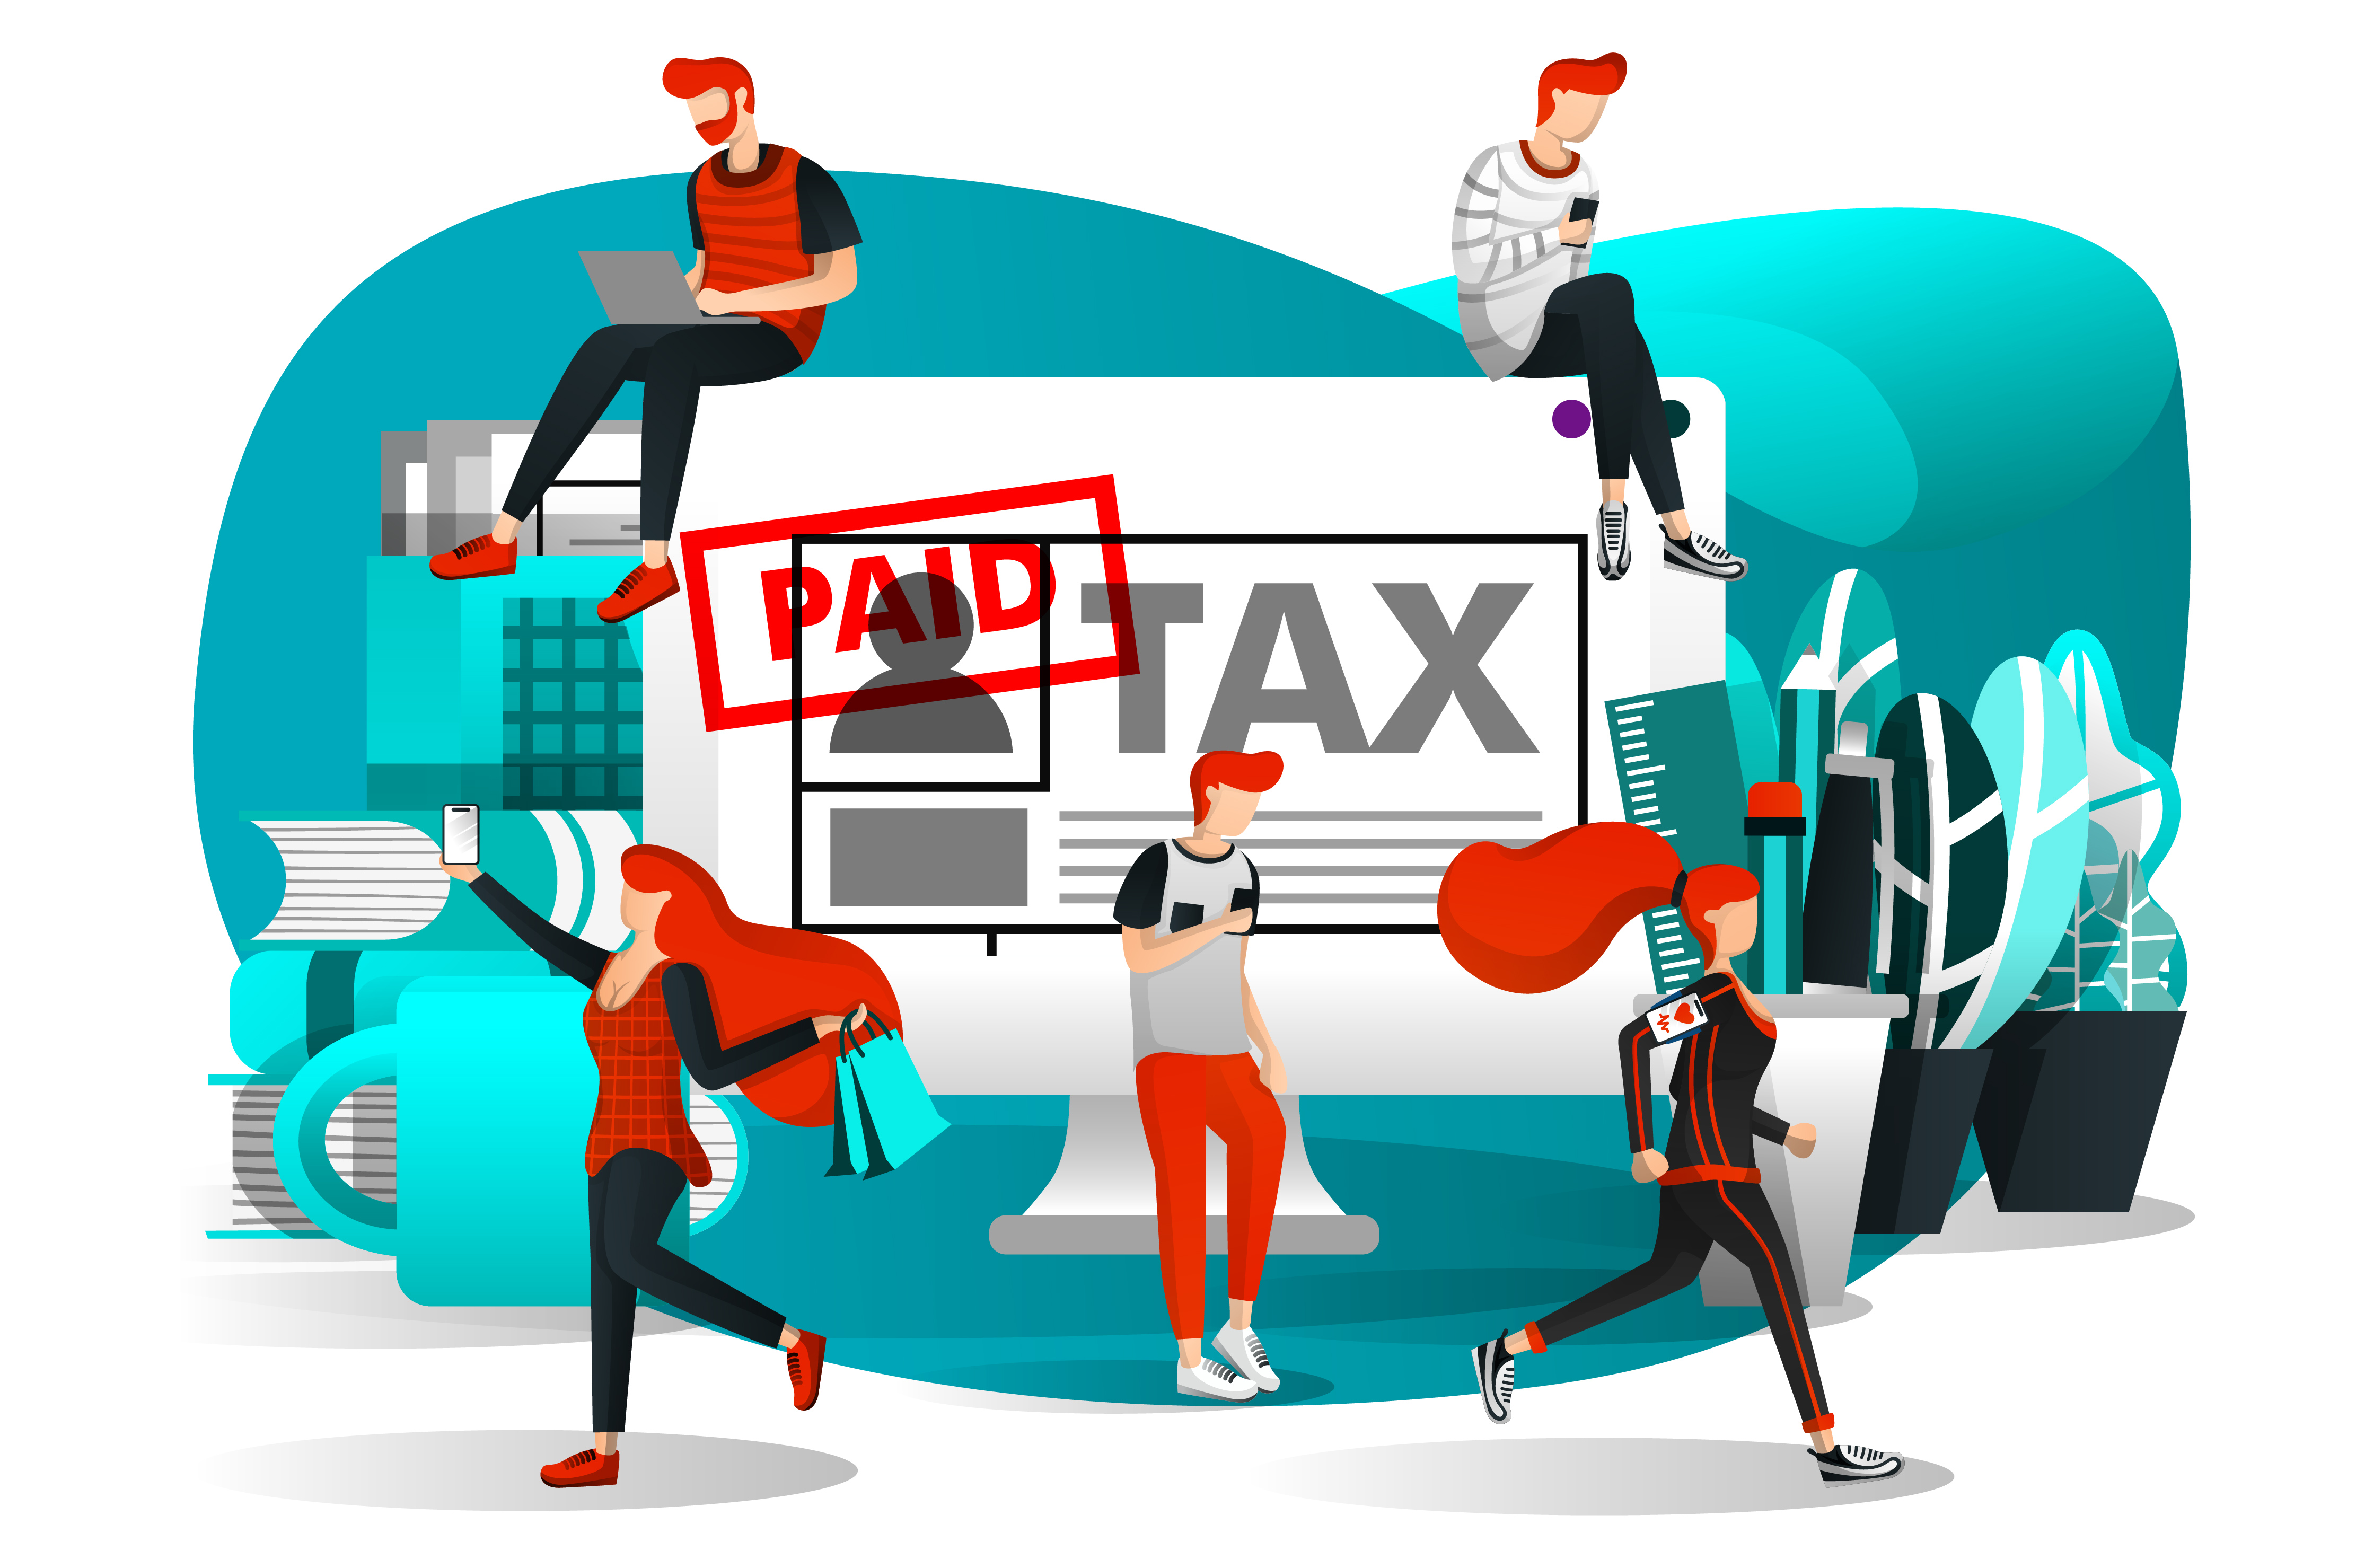 Download Free Illustration Of Payment Of Taxes Graphic By Setiawanarief111 for Cricut Explore, Silhouette and other cutting machines.